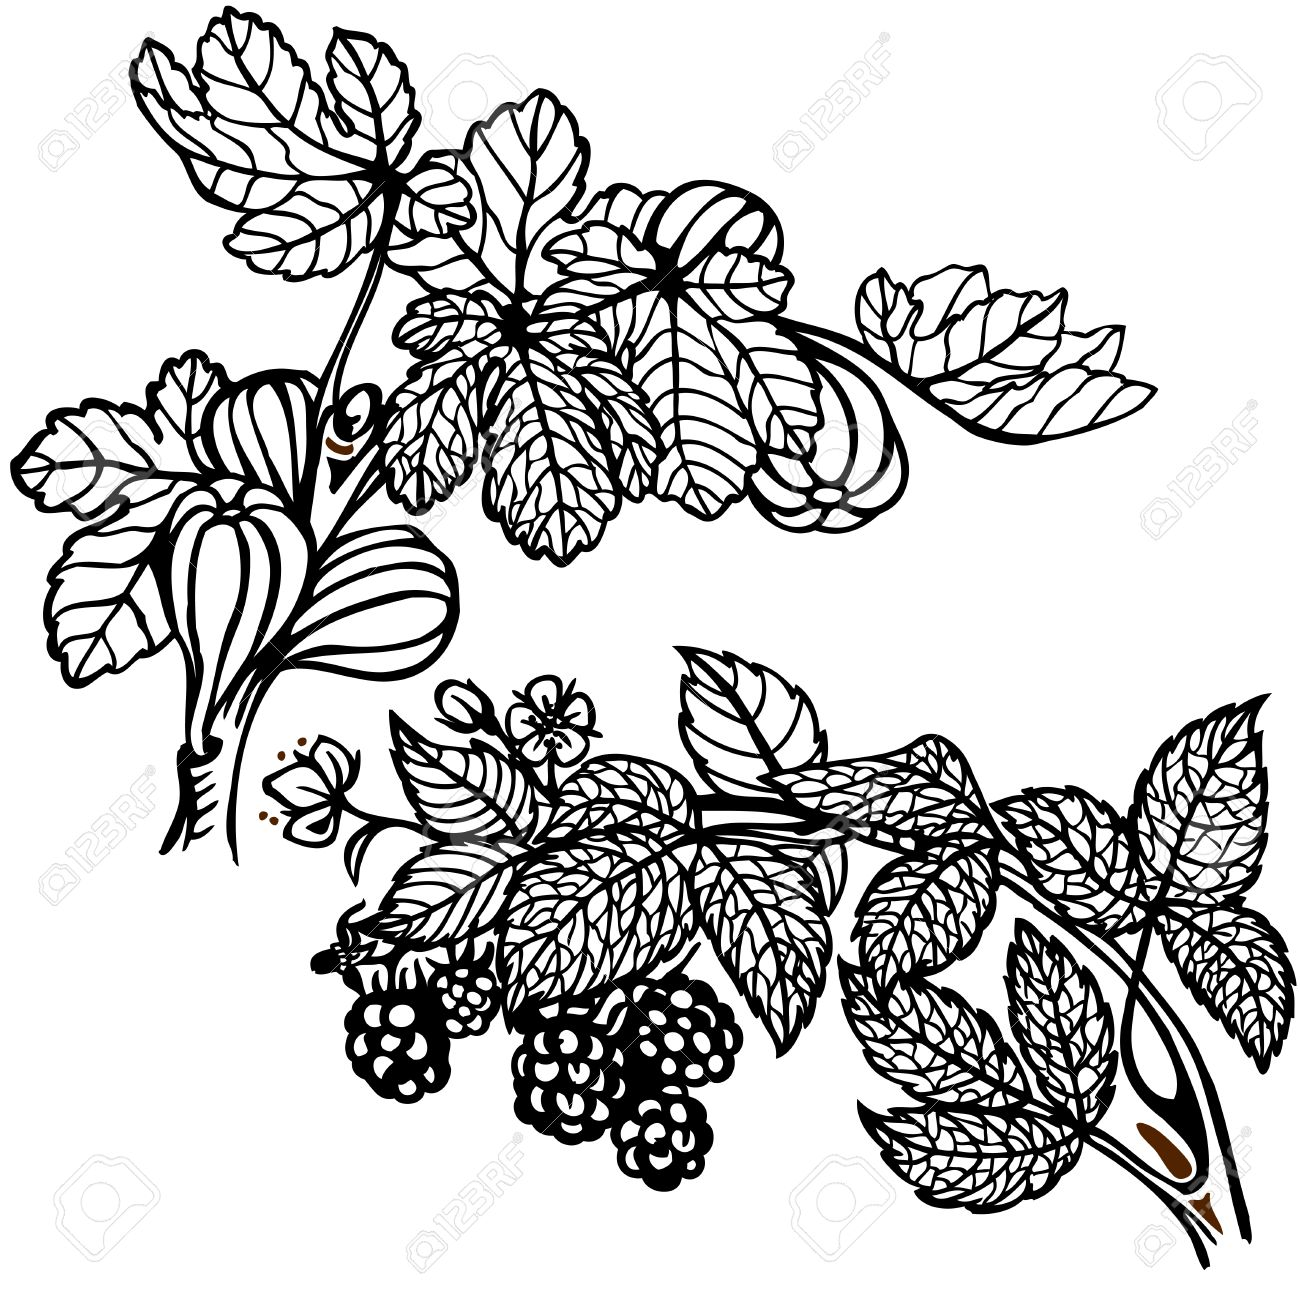 1300x1300 Branch Of Blackberries And Figs Branch. Drawing. Vintage. Royalty